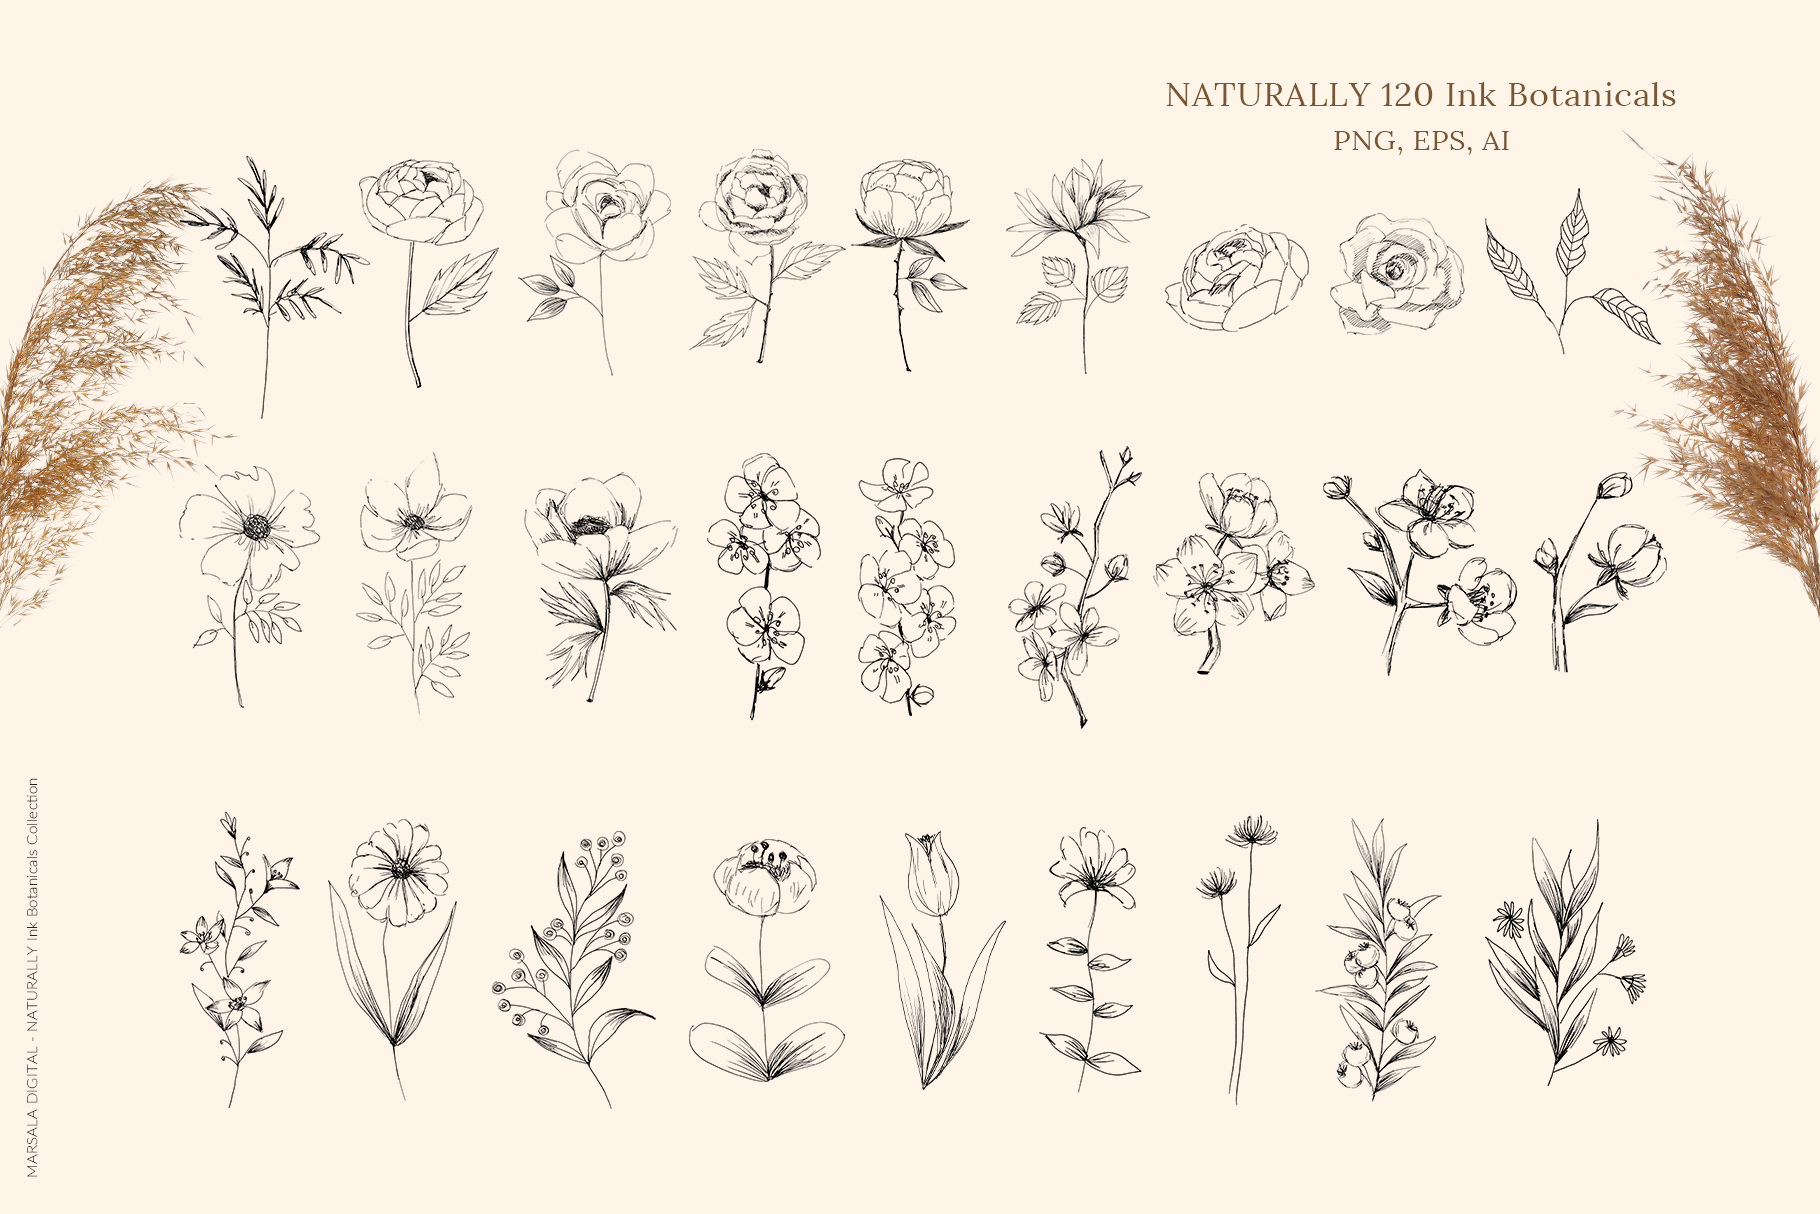 Ink Botanicals Vintage Wildflowers Ink Botanicals Vintage example image 12